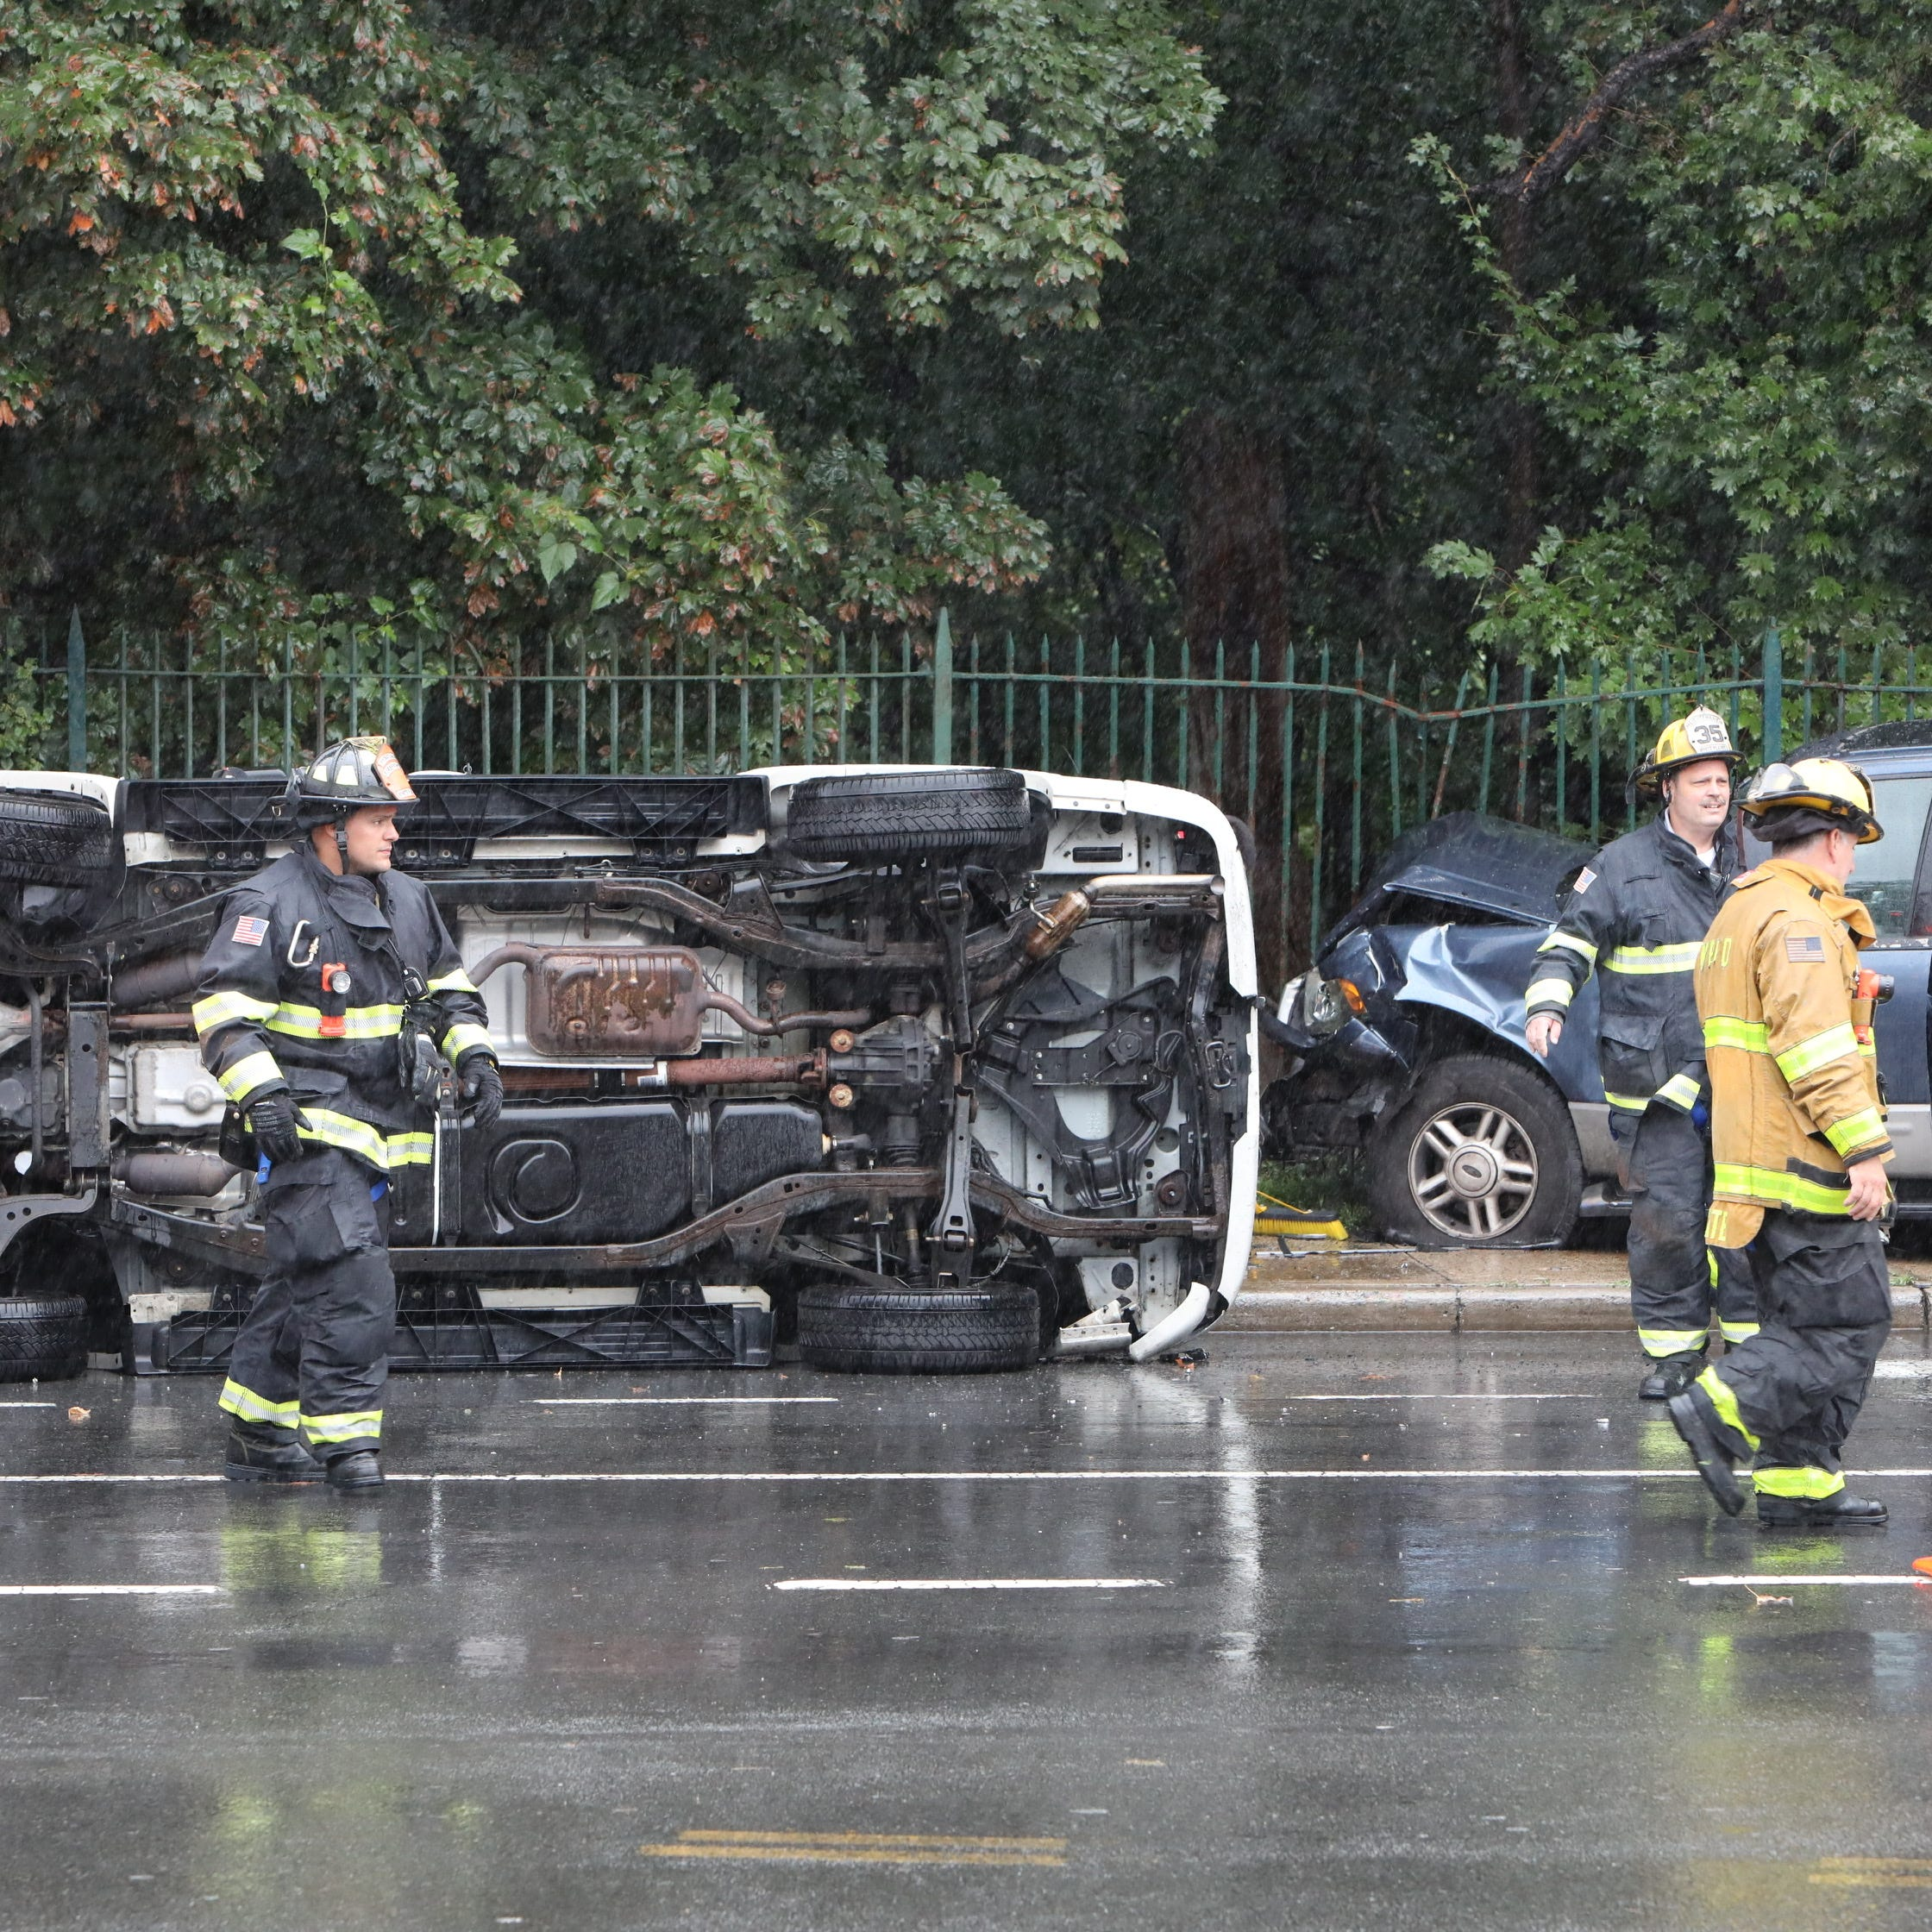 One injured when two cars crash on Mamaroneck Avenue in White Plains